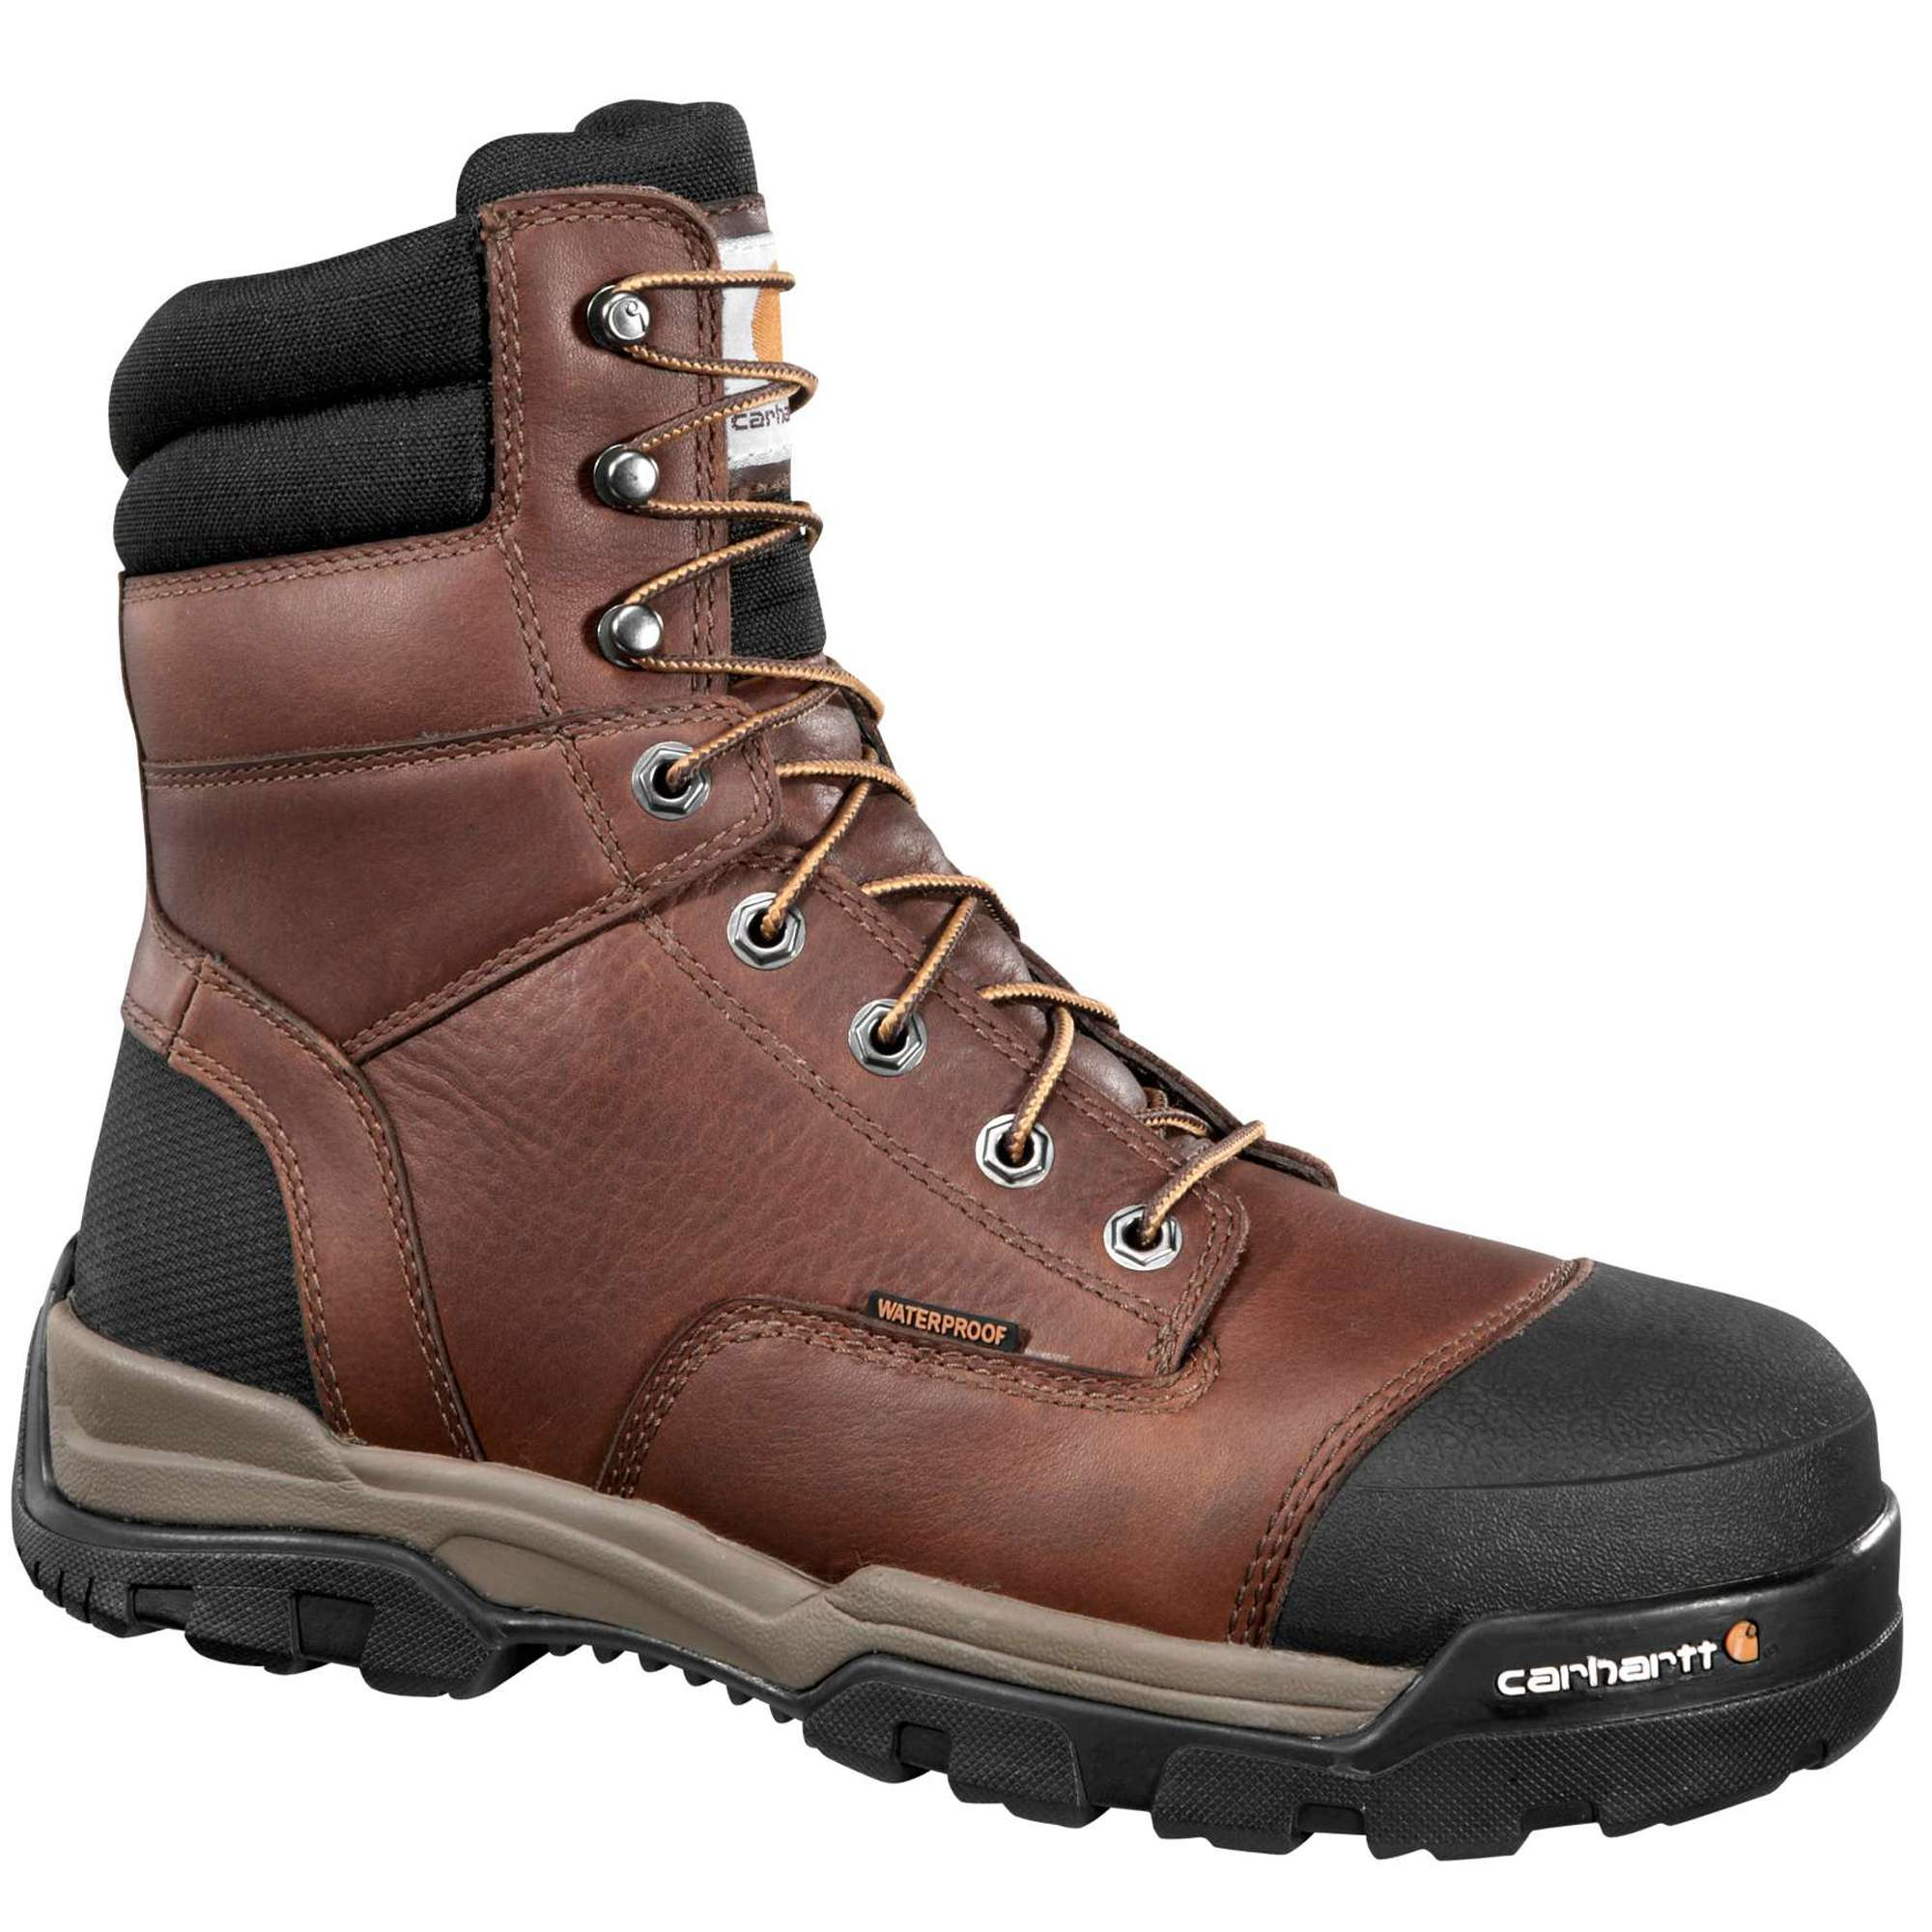 MEN'S GROUND FORCE 8-INCH COMPOSITE TOE WORK BOOT